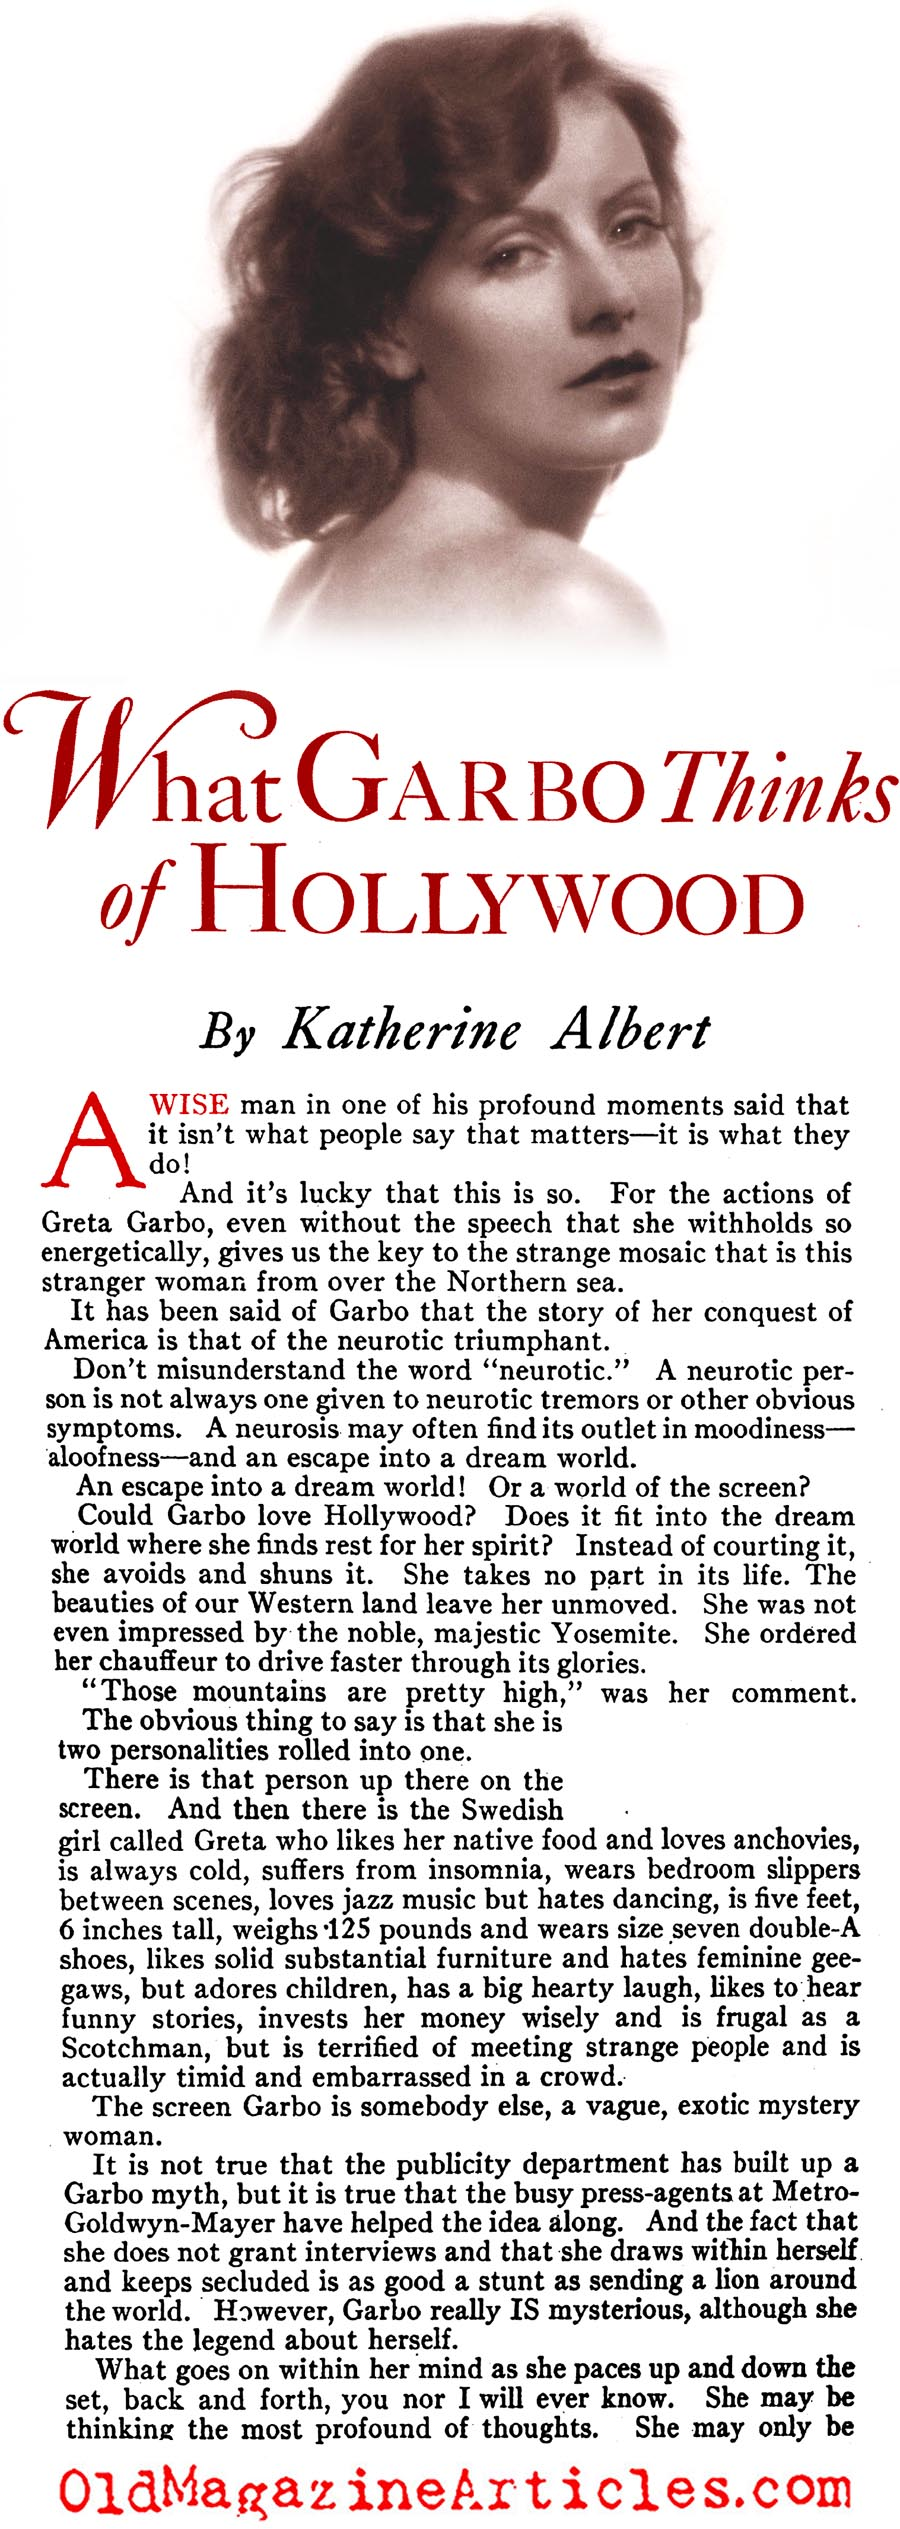 Greta Garbo's First Impressions of Hollywood (Photoplay Magazine, 1930)